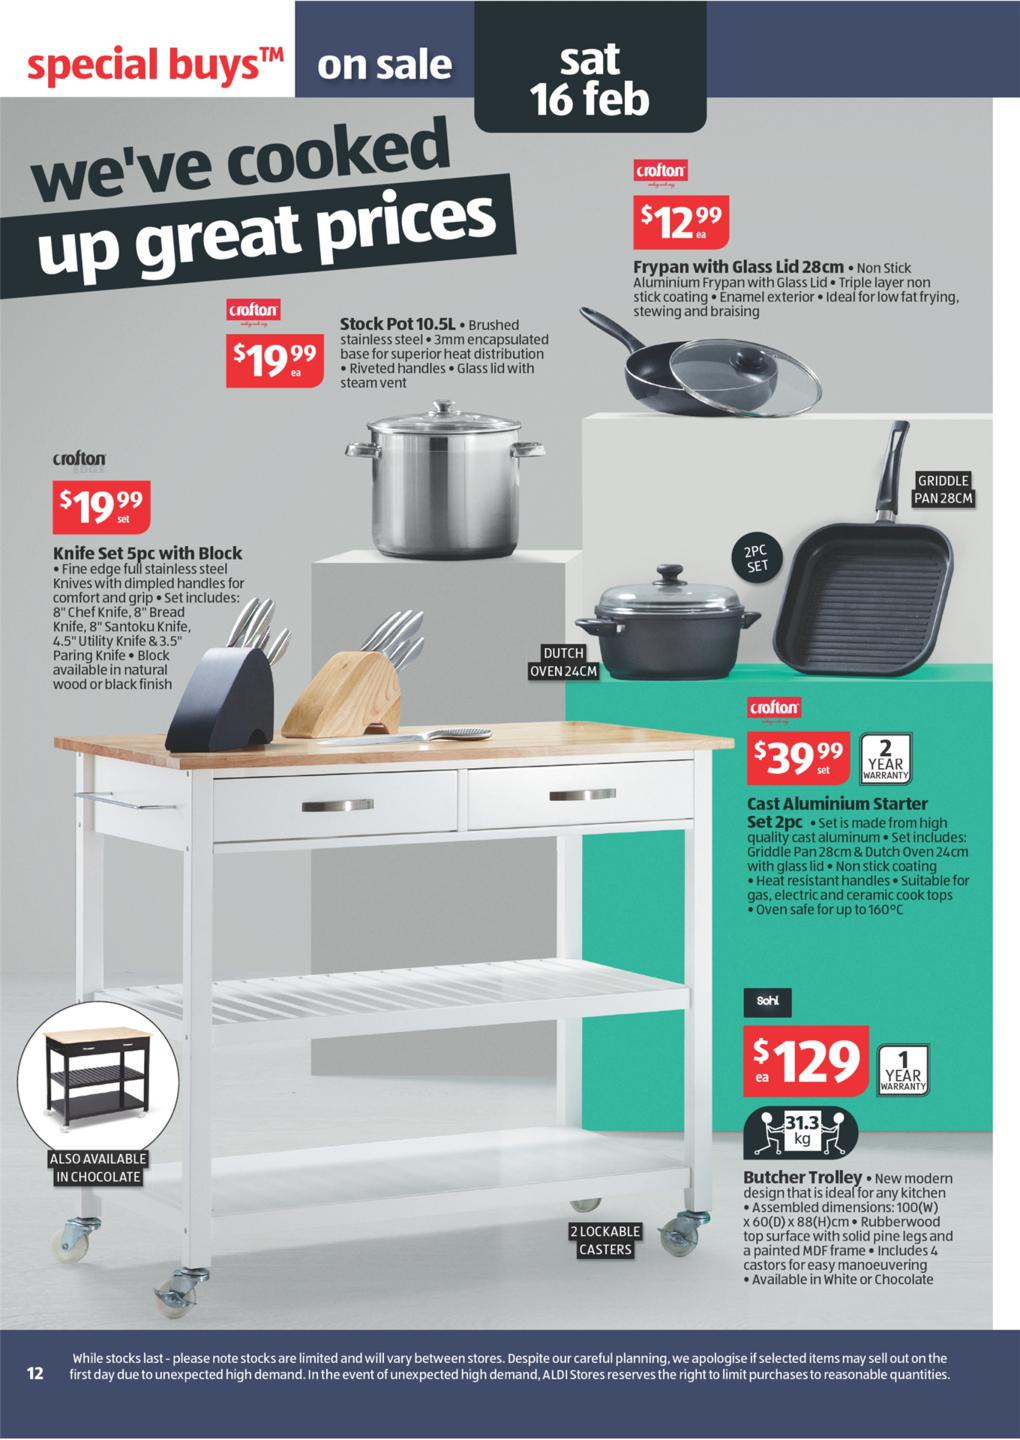 Aldi Kitchen Butcher Trolley : ALDI Catalogue - Special Buys Wk 7 2013 Page 12